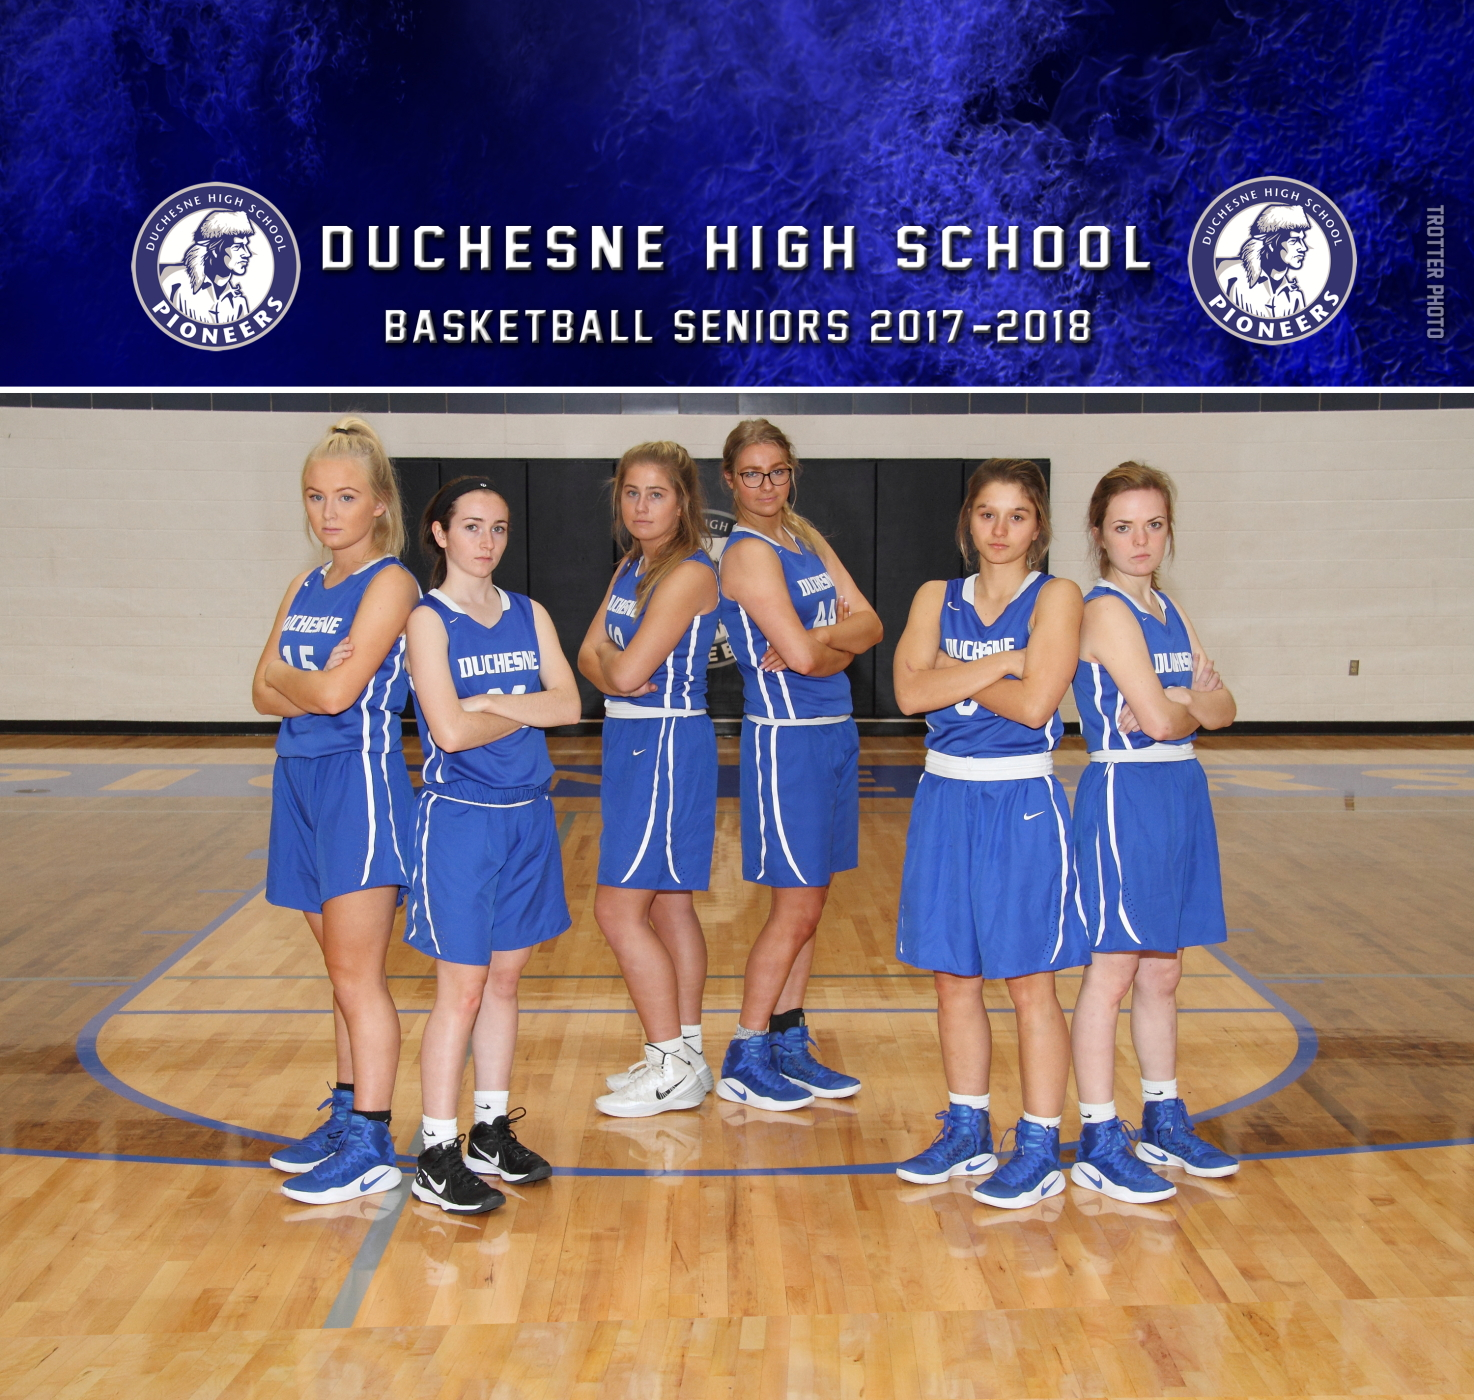 Duchesne High School House Raffle Duchesne High School Girls Basketball